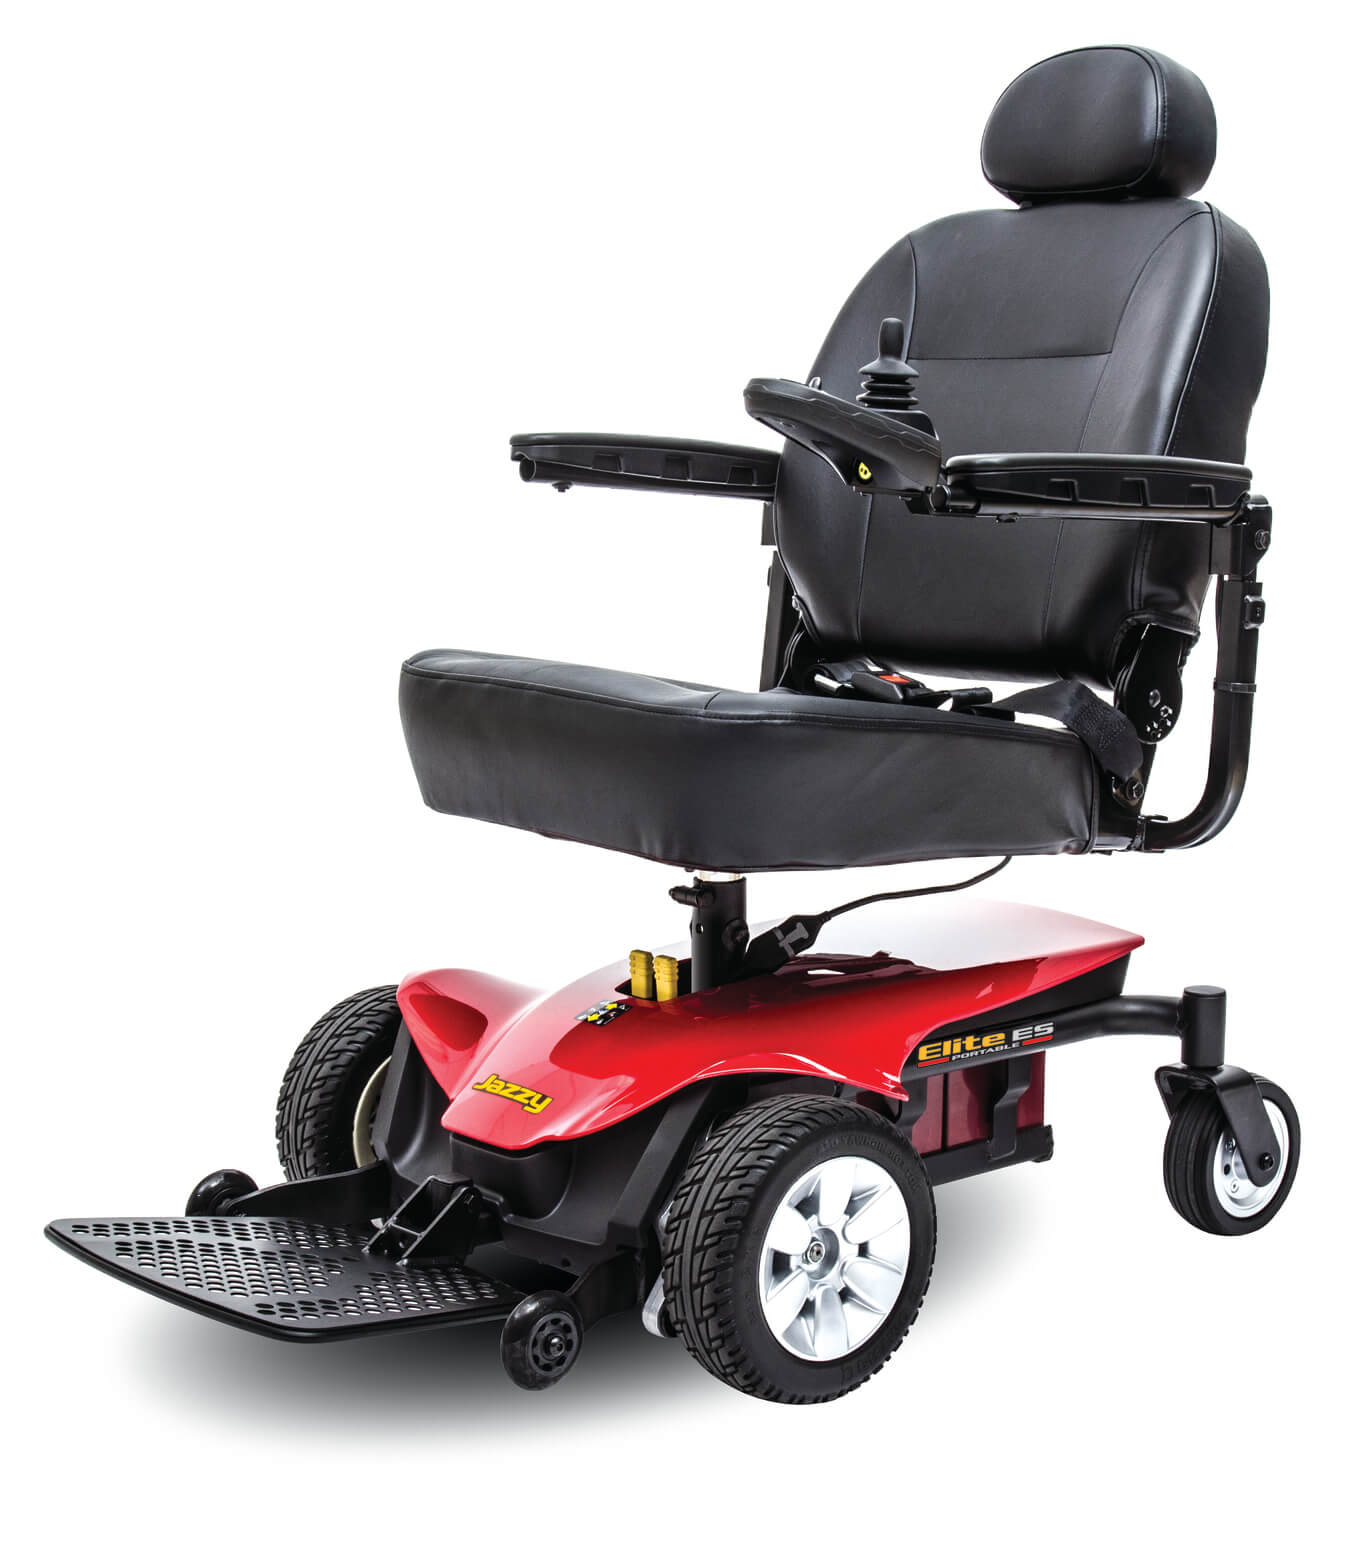 power wheelchair batteries medicare jens chair design within reach jazzy elite es portable washington dc baltimore